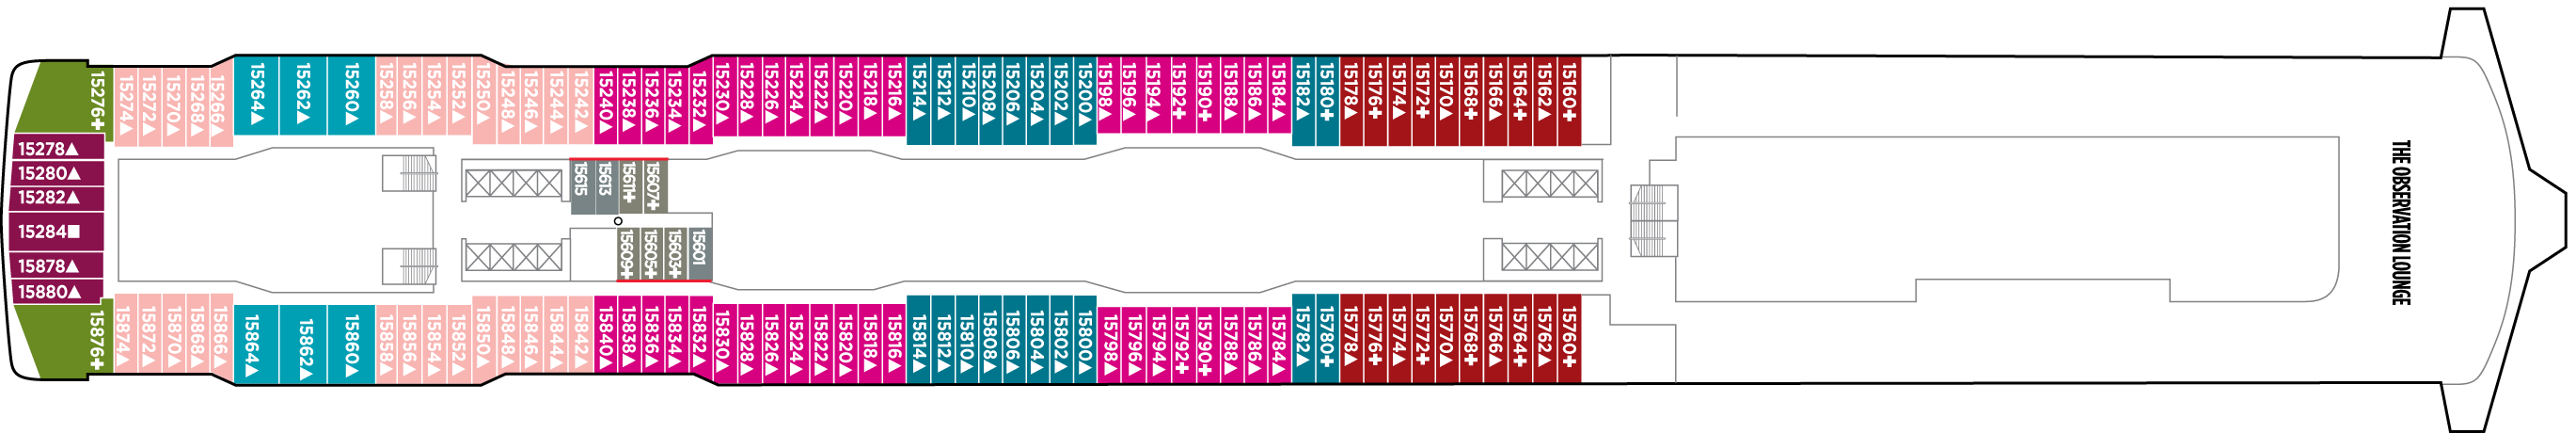 Norwegian Cruise Lines Norwegian Bliss Deck Plans Deck 15.png